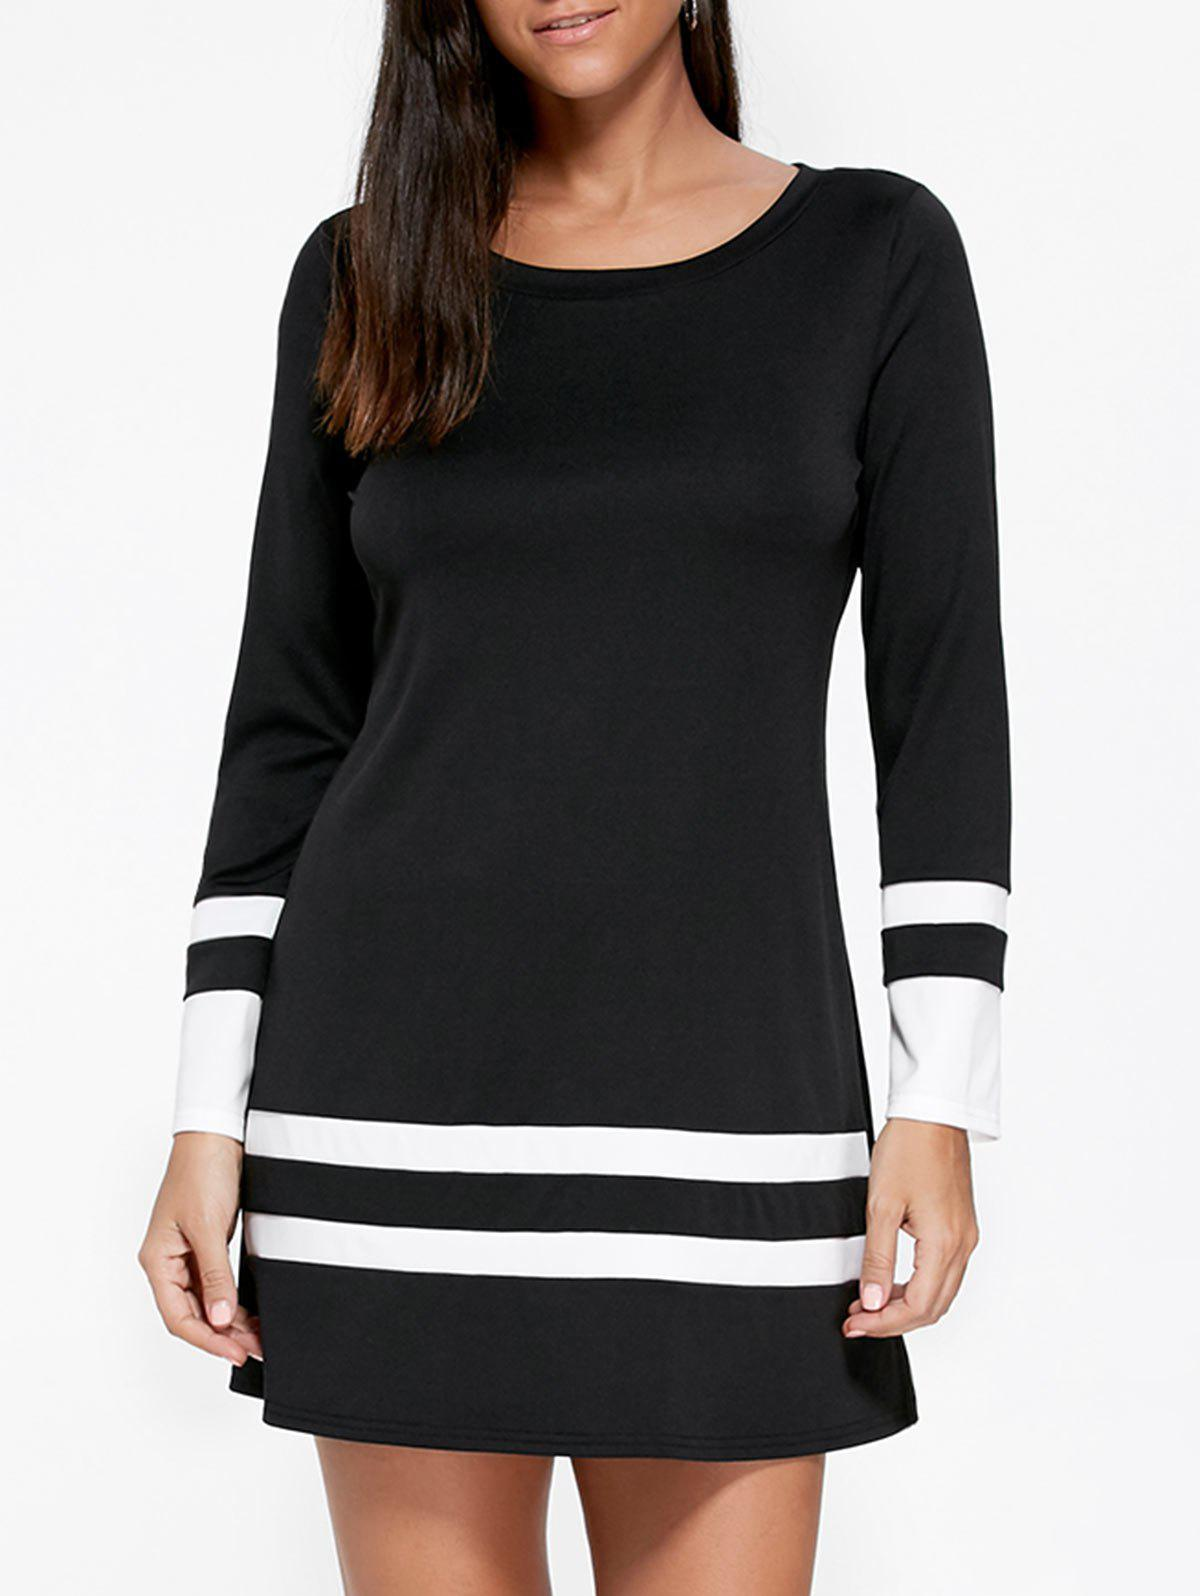 Long Sleeve Two Tone T-shirt DressWOMEN<br><br>Size: XL; Color: BLACK; Style: Casual; Material: Polyester,Spandex; Silhouette: Straight; Dresses Length: Mini; Neckline: Round Collar; Sleeve Length: Long Sleeves; Pattern Type: Striped; With Belt: No; Season: Fall,Spring,Summer; Weight: 0.3000kg; Package Contents: 1 x Dress; Occasion: Casual,Going Out;